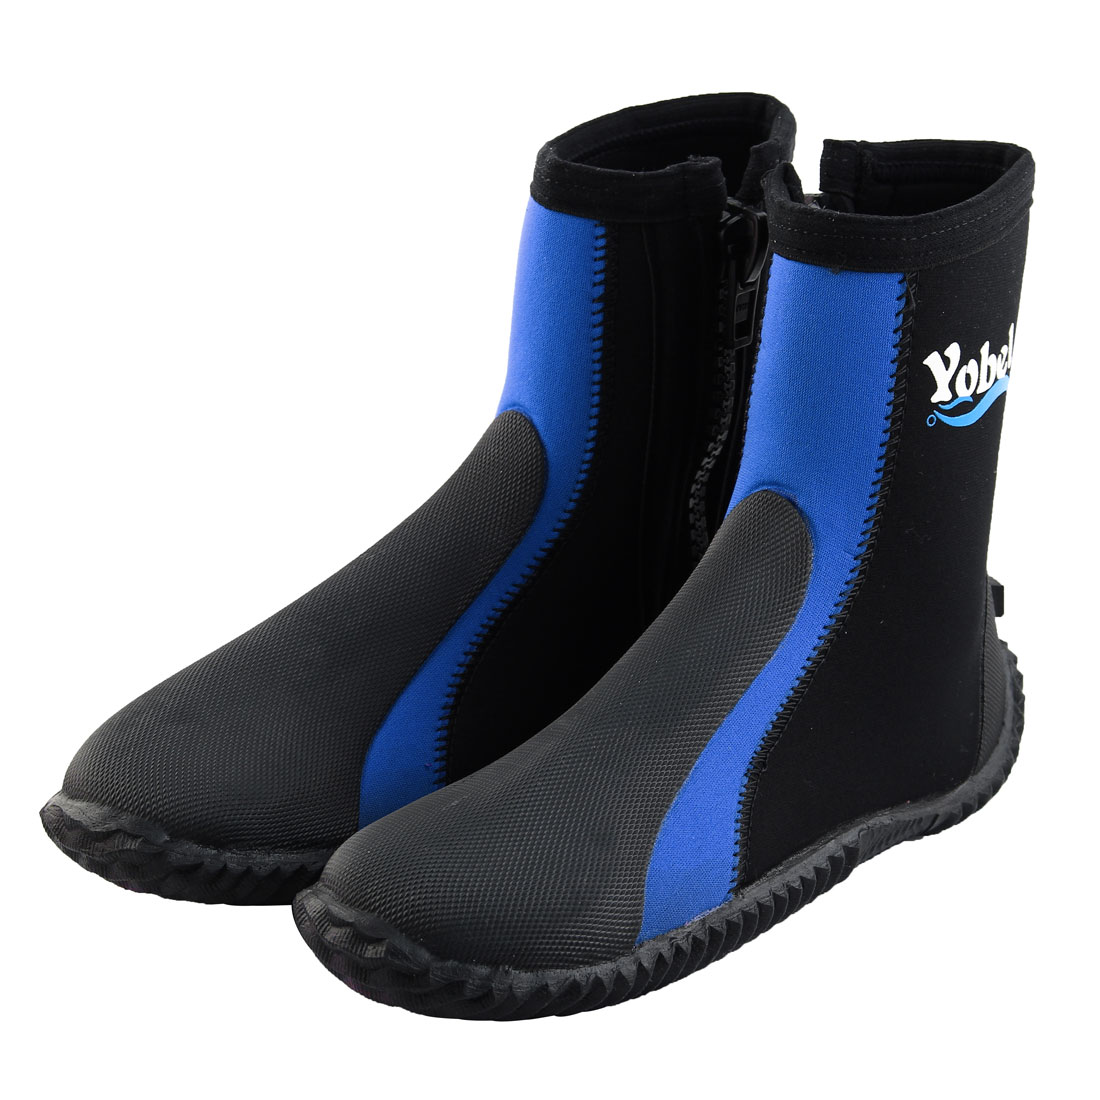 Outdoor Diving Surfing Beach Winter Swimming Anti-slip Wetsuits Water Shoes Boots US 6 Pair Blue by Unique-Bargains